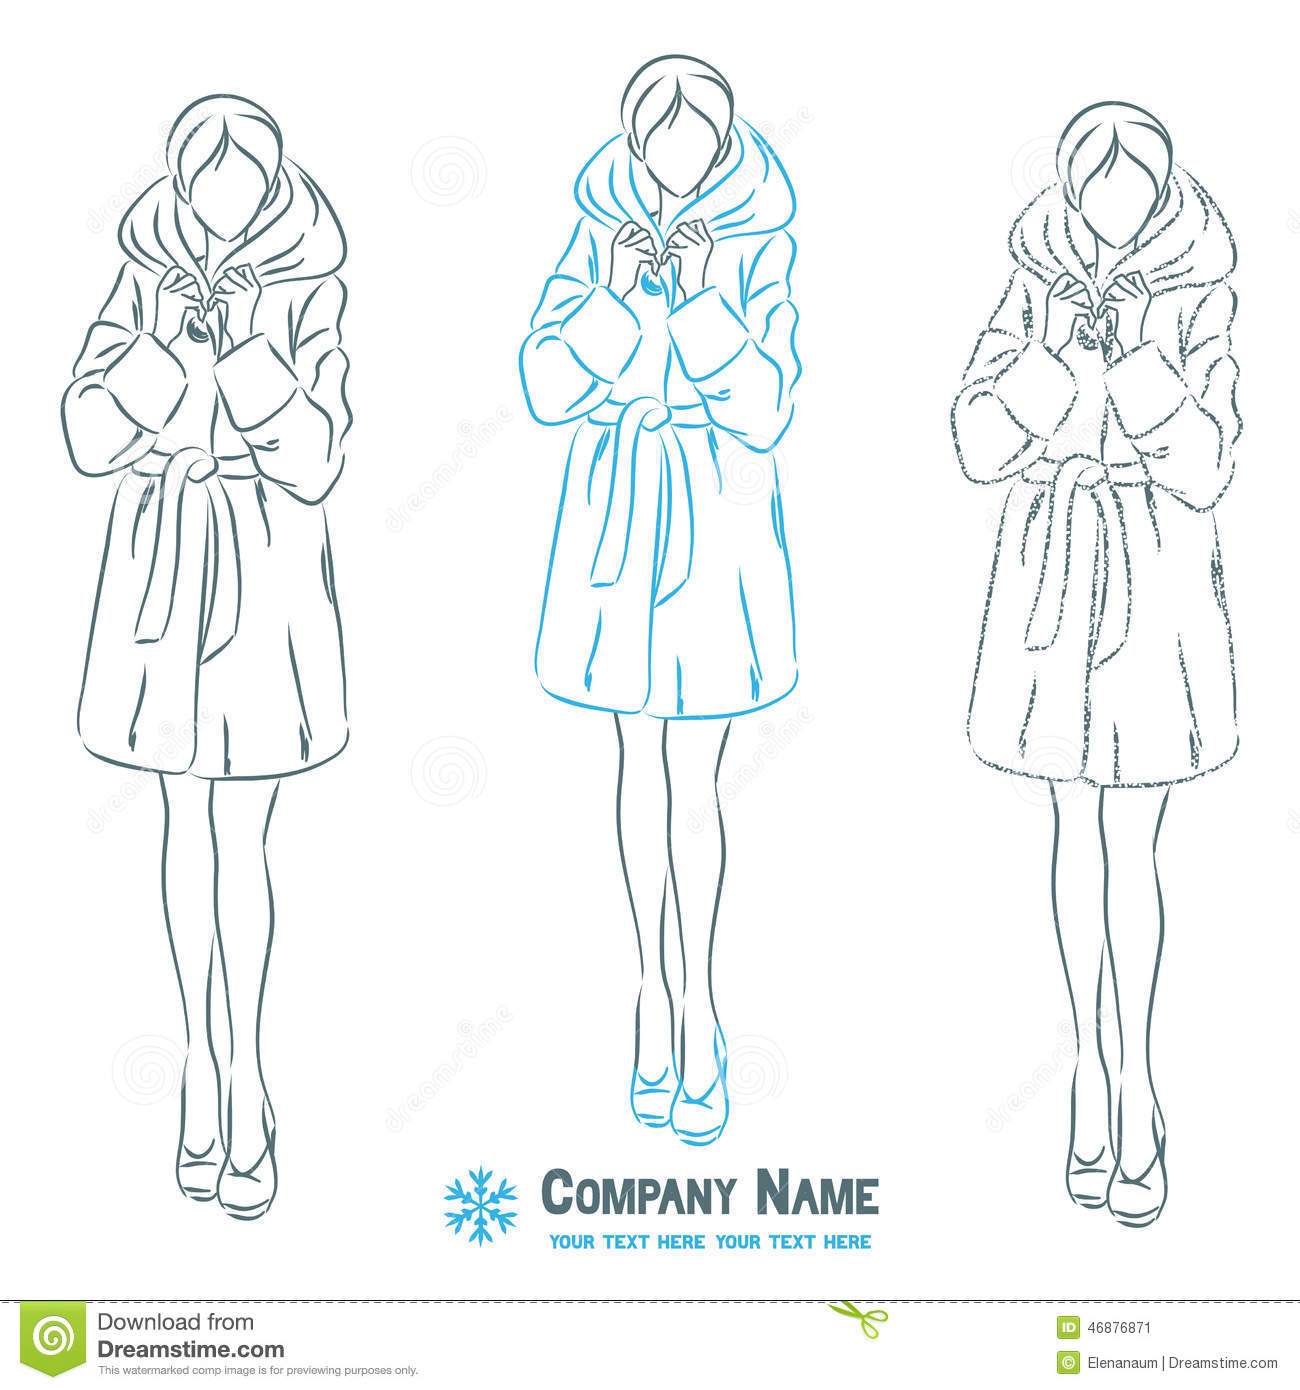 female body shape and young girls Download body shape stock photos affordable and search from millions of royalty free images, photos and vectors.